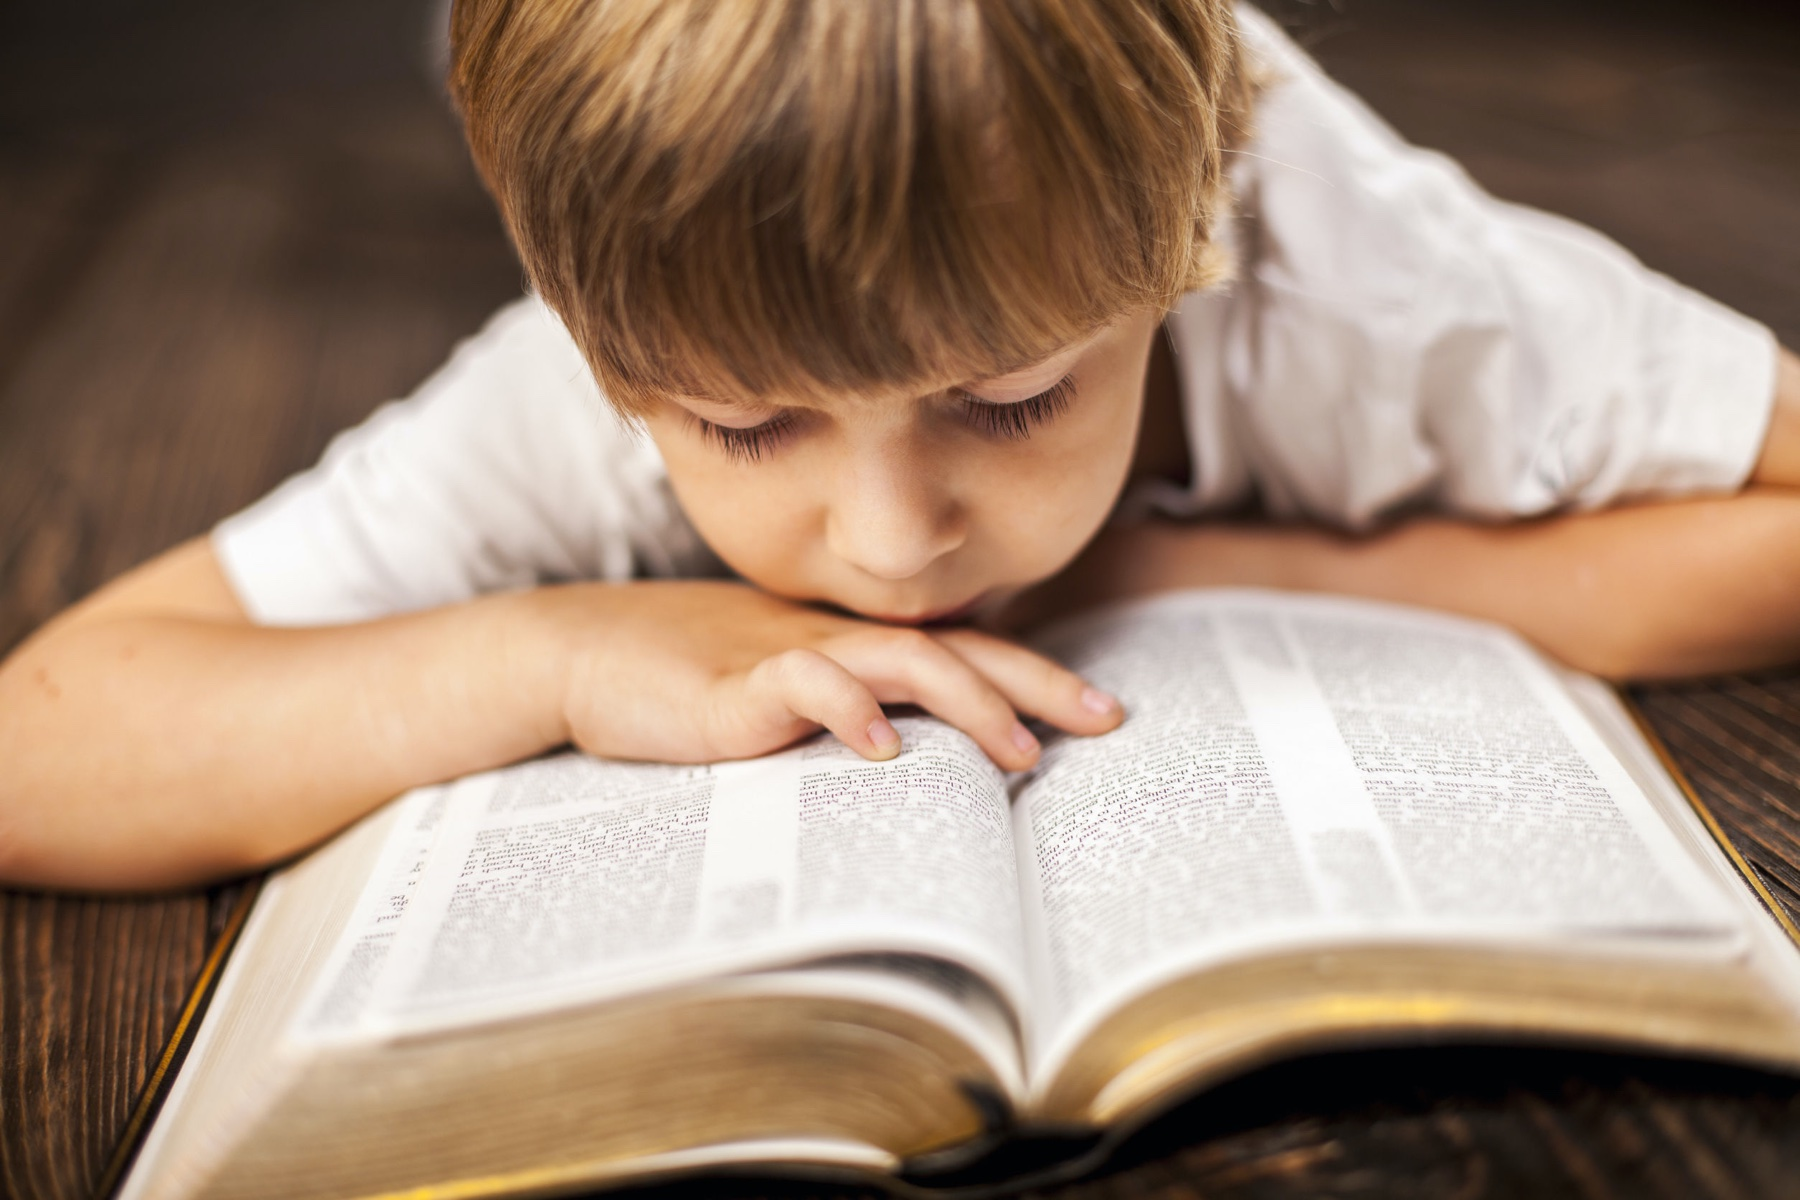 boy studying the scriptures.